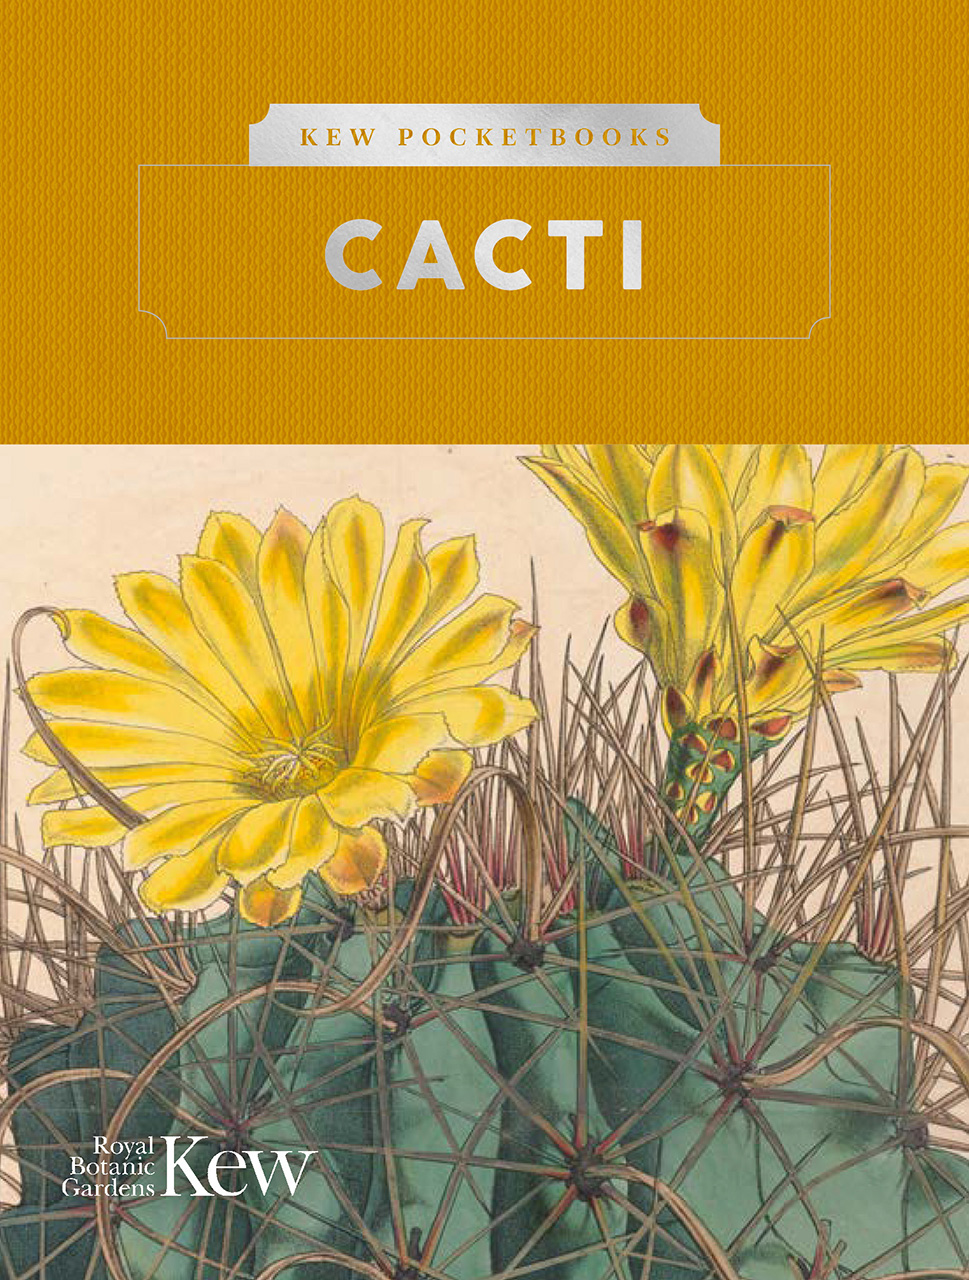 Kew Pocketbooks: Cacti